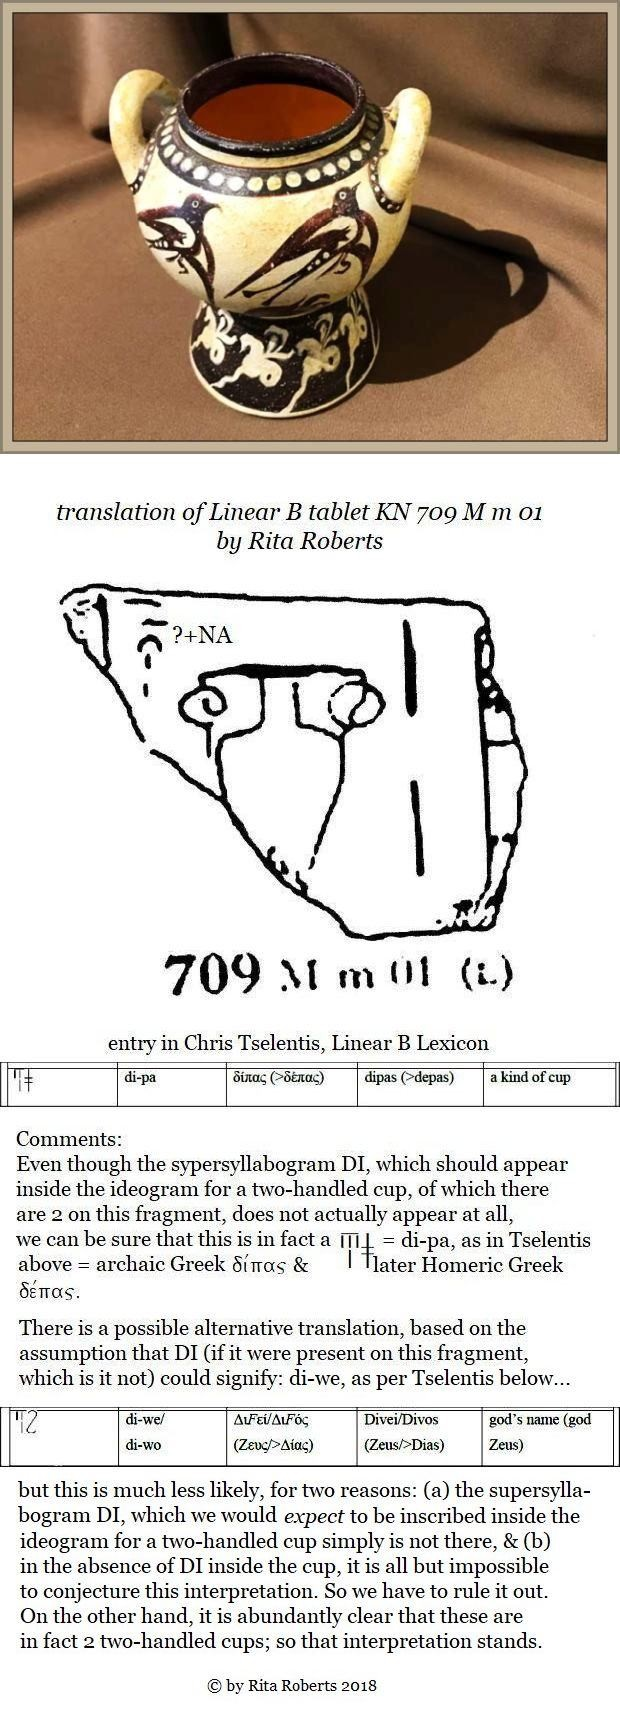 Linear B fragment KN 709 M m 01 two-handled cup